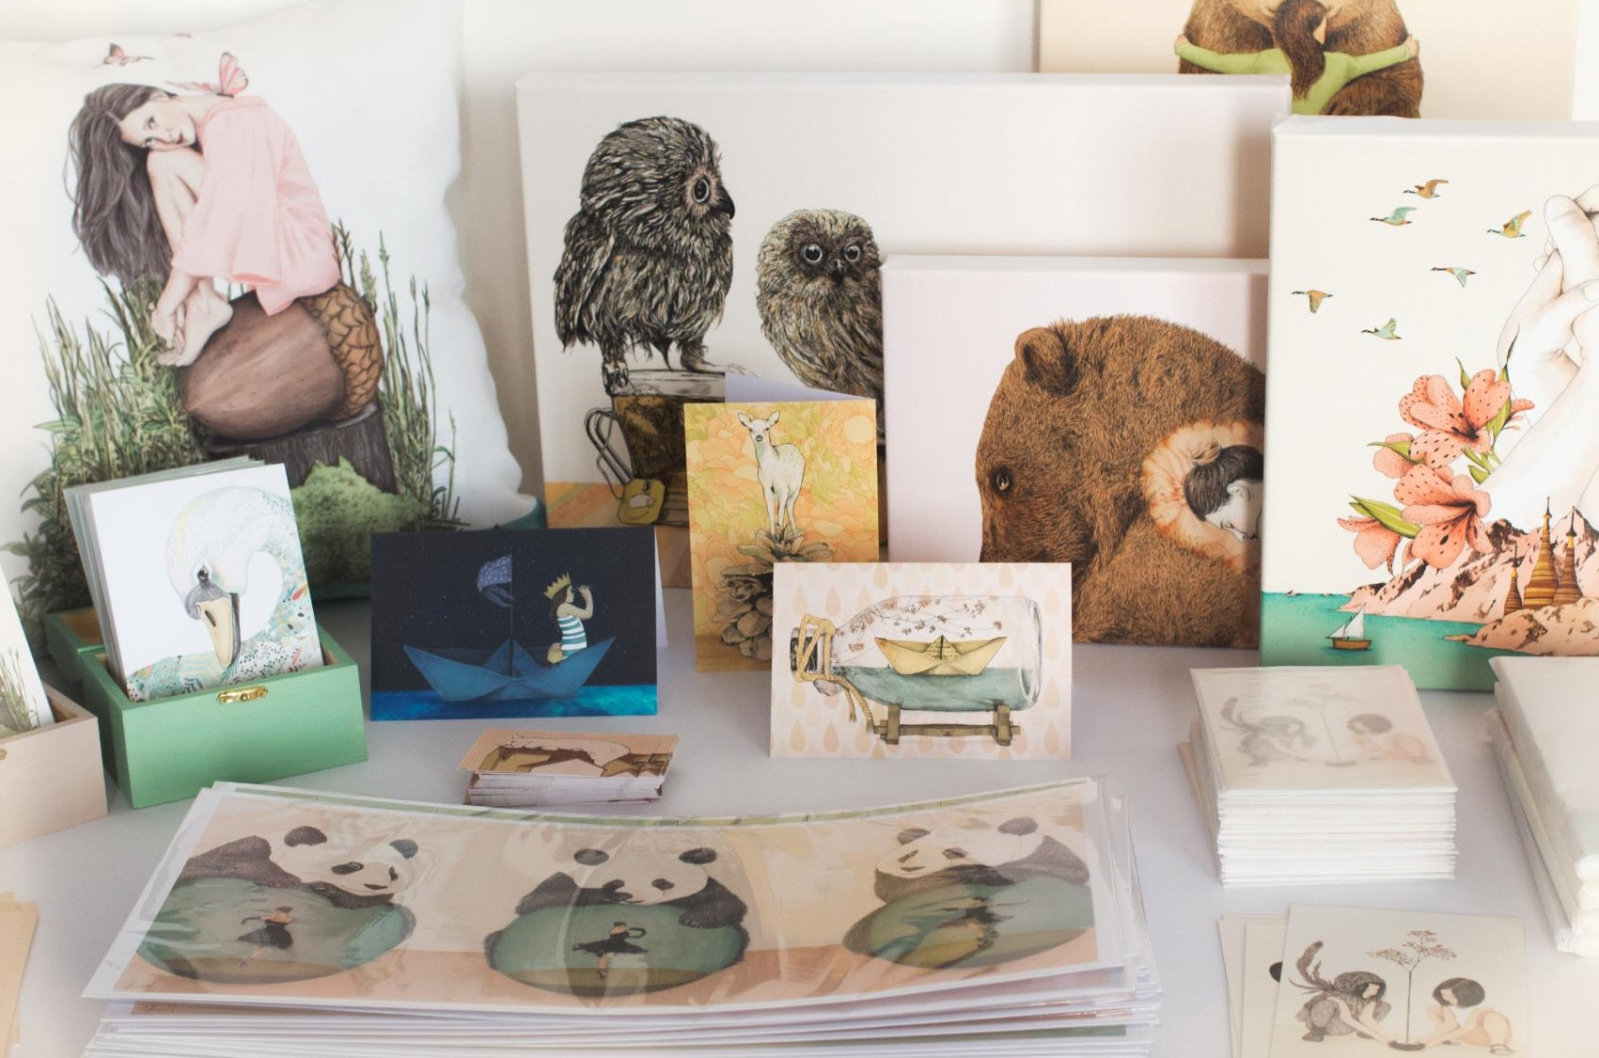 You can buy stationery goods featuring illustrations by Gabriella Barouch.